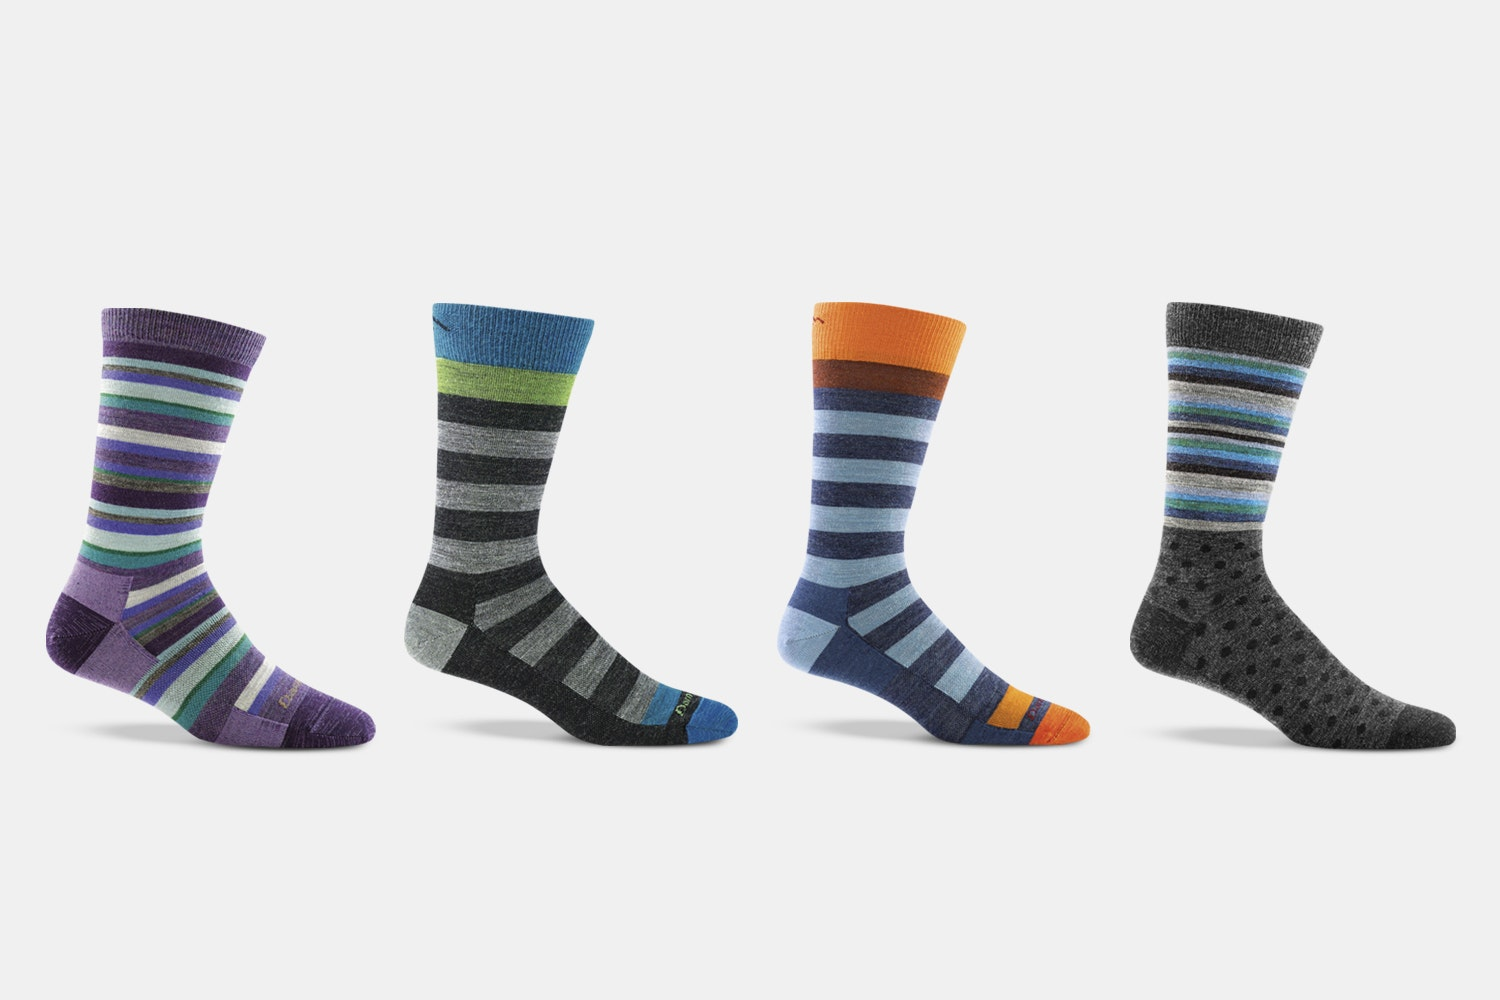 Darn Tough Striped Lifestyle Socks (2-Pack)